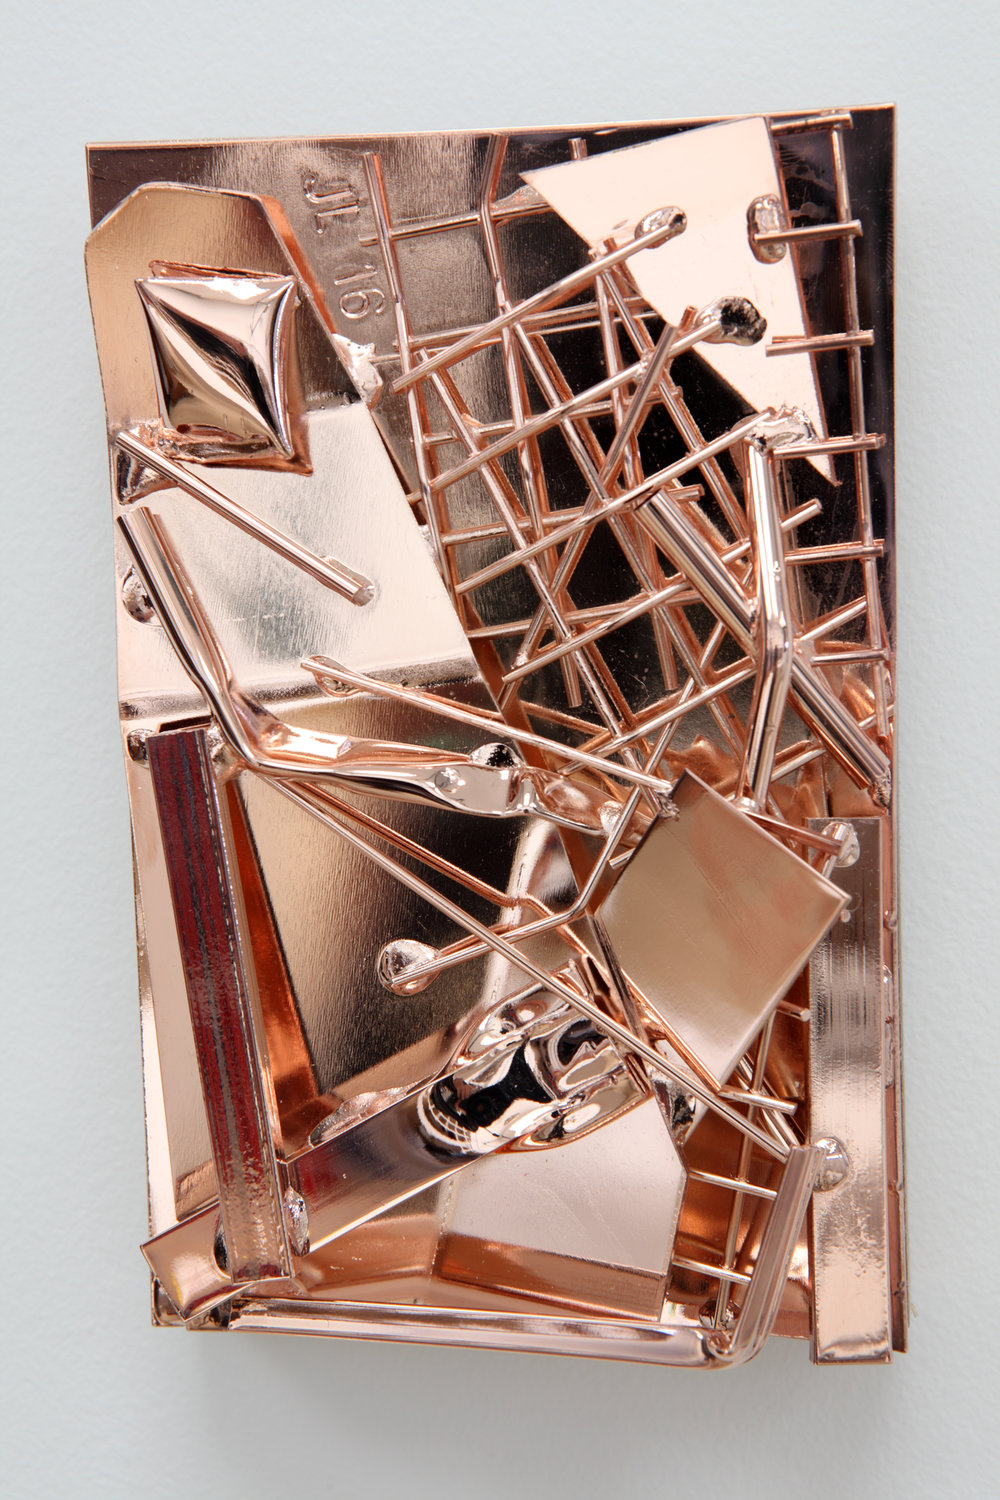 Self Portrait and Studio, 2016, rose gold coated steel, 15 x 10 cm